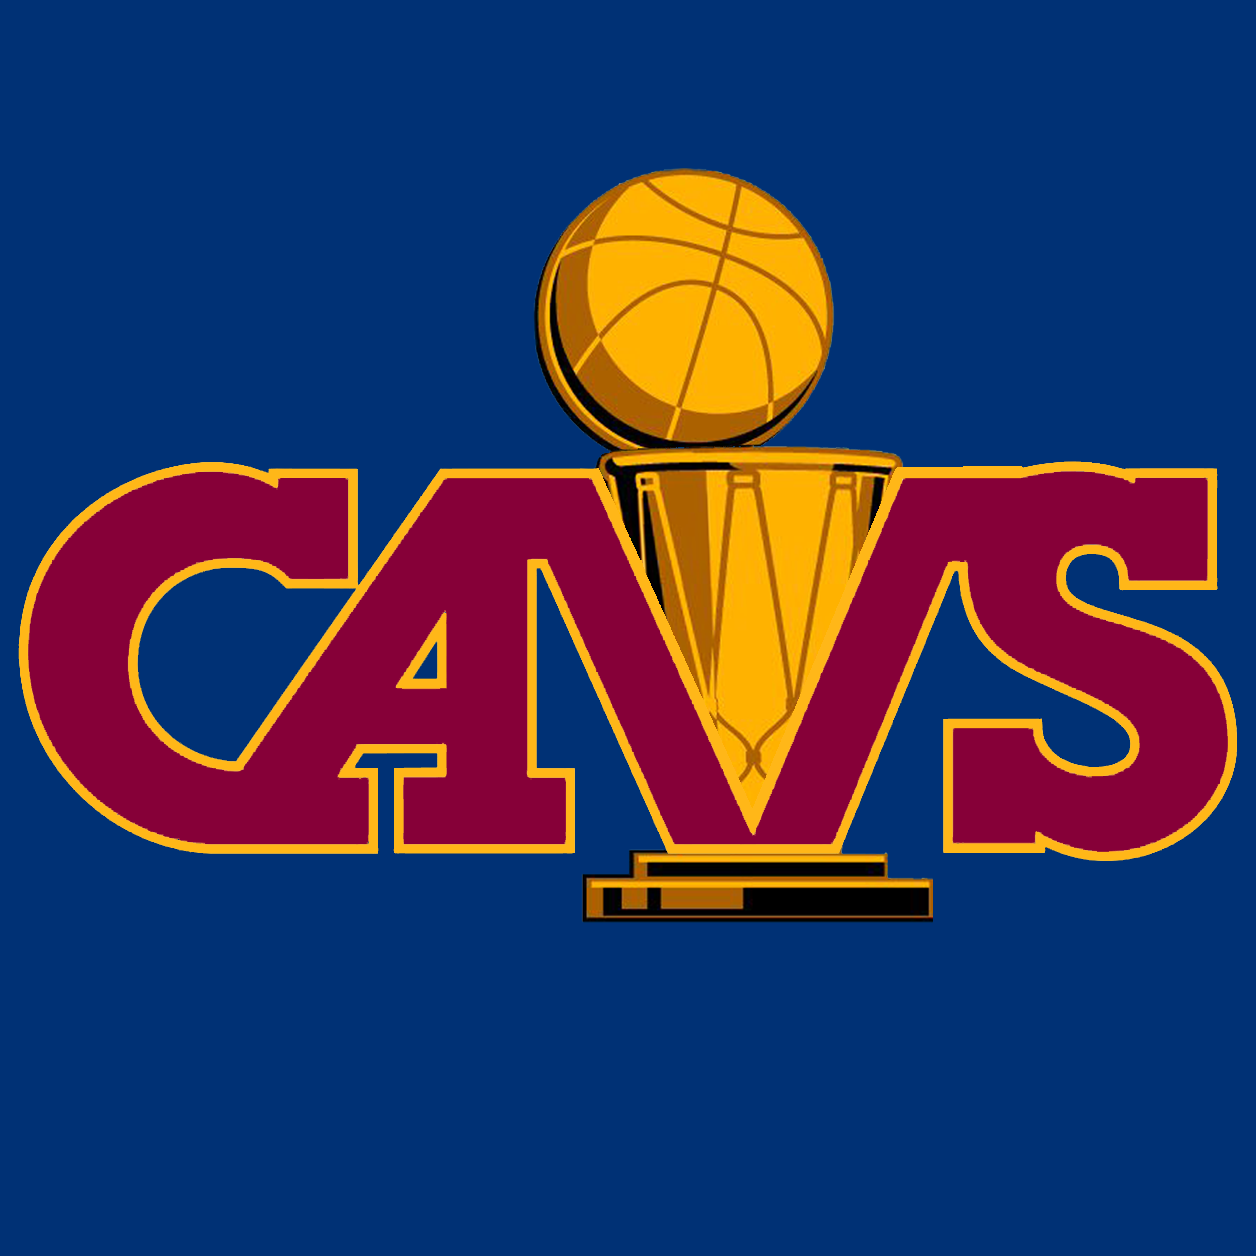 Present Cavs Colors.